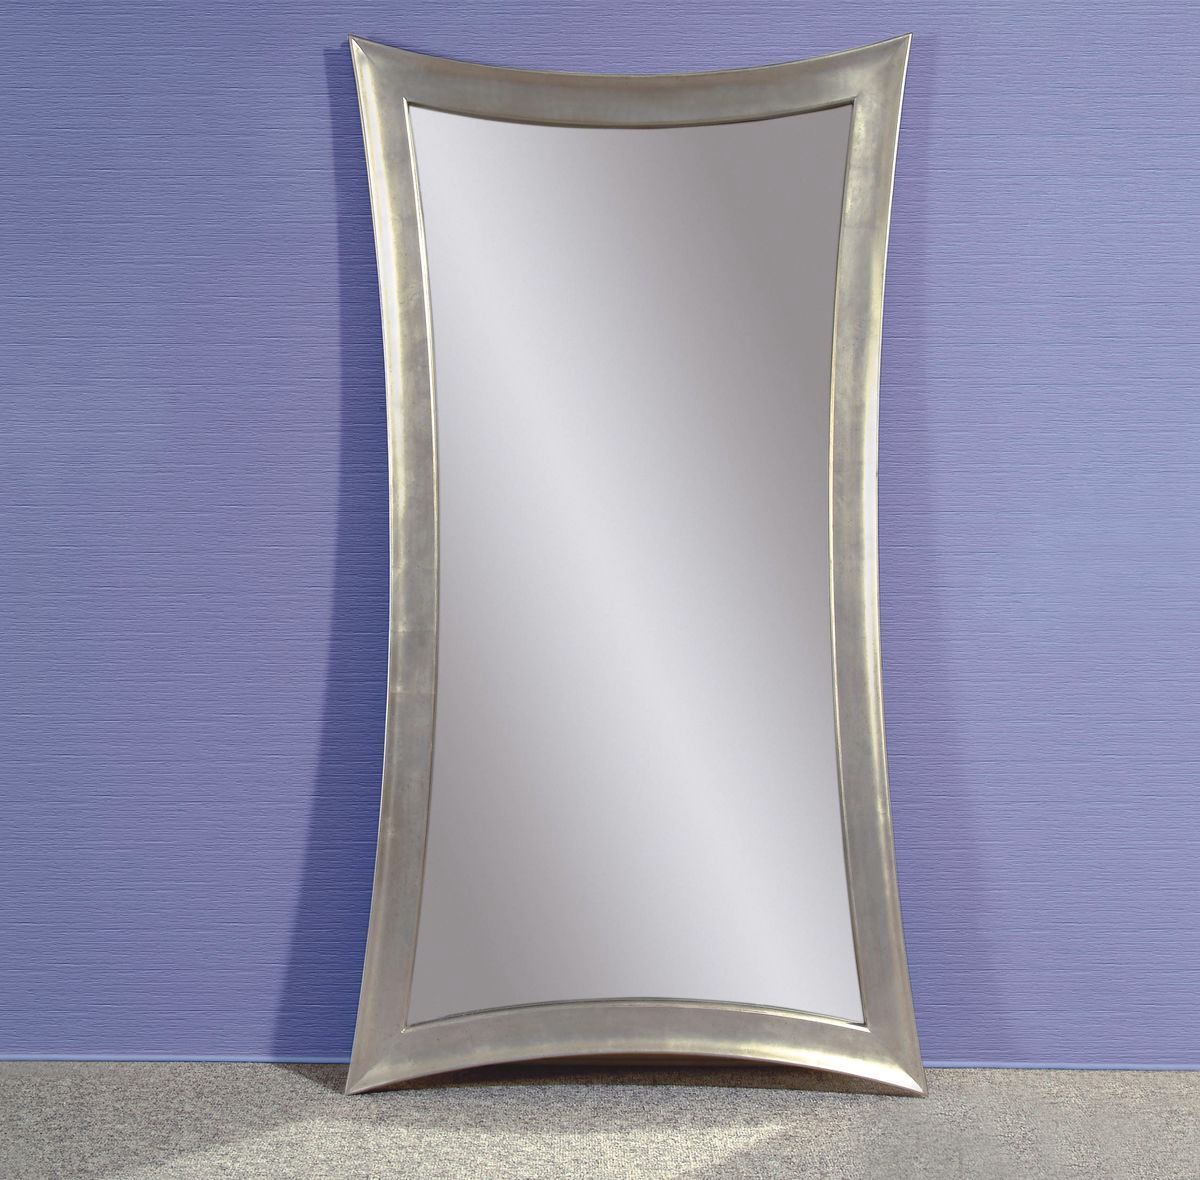 Hour Glass Traditional Shaped Leaning Floor Mirror M1718ec